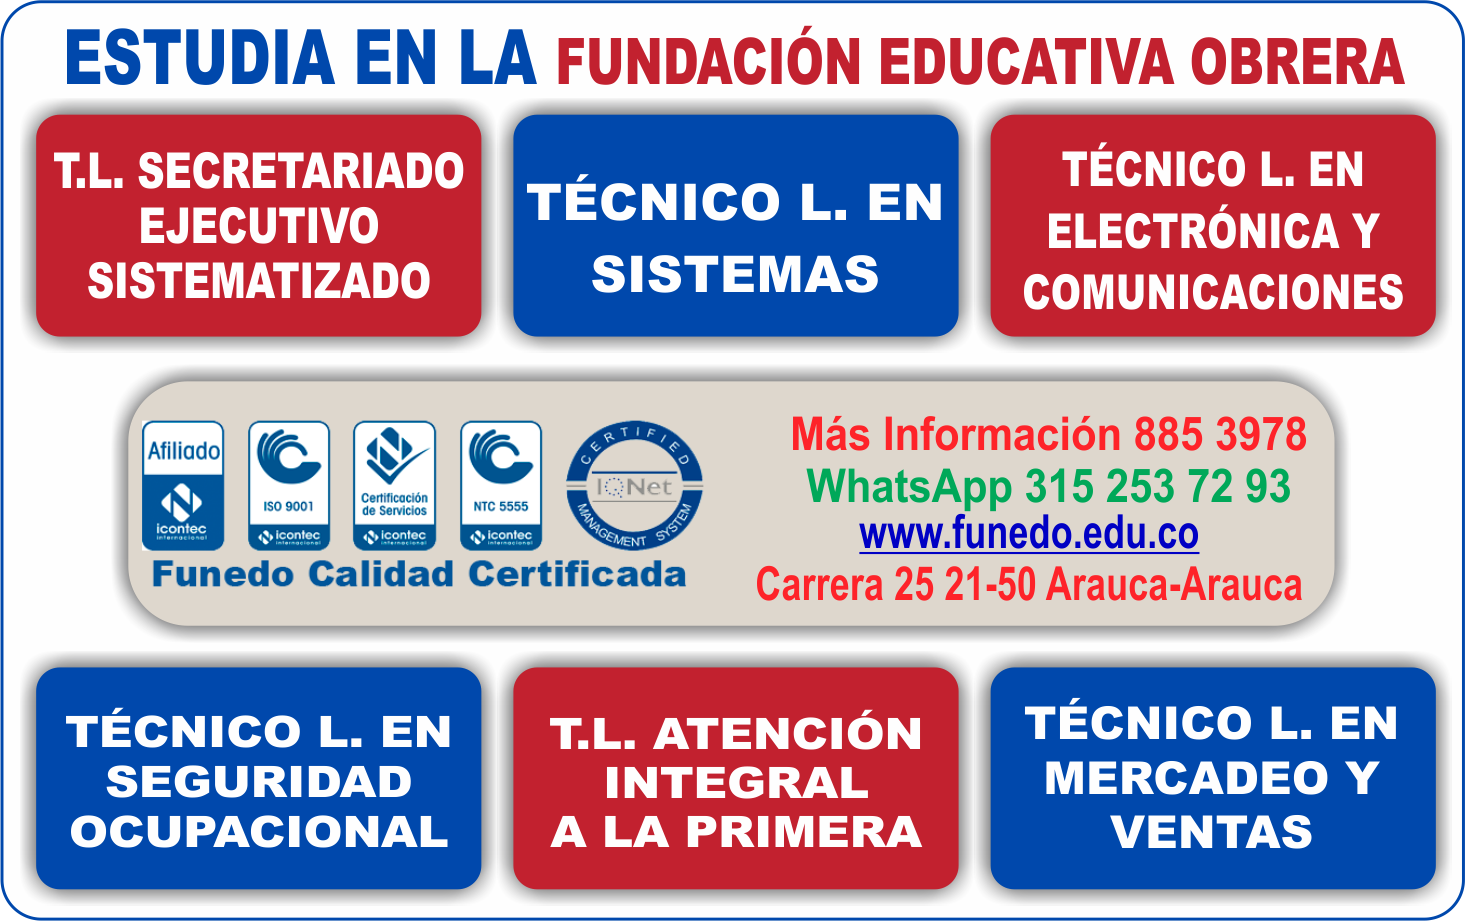 Oferat educativa Funedo 2018